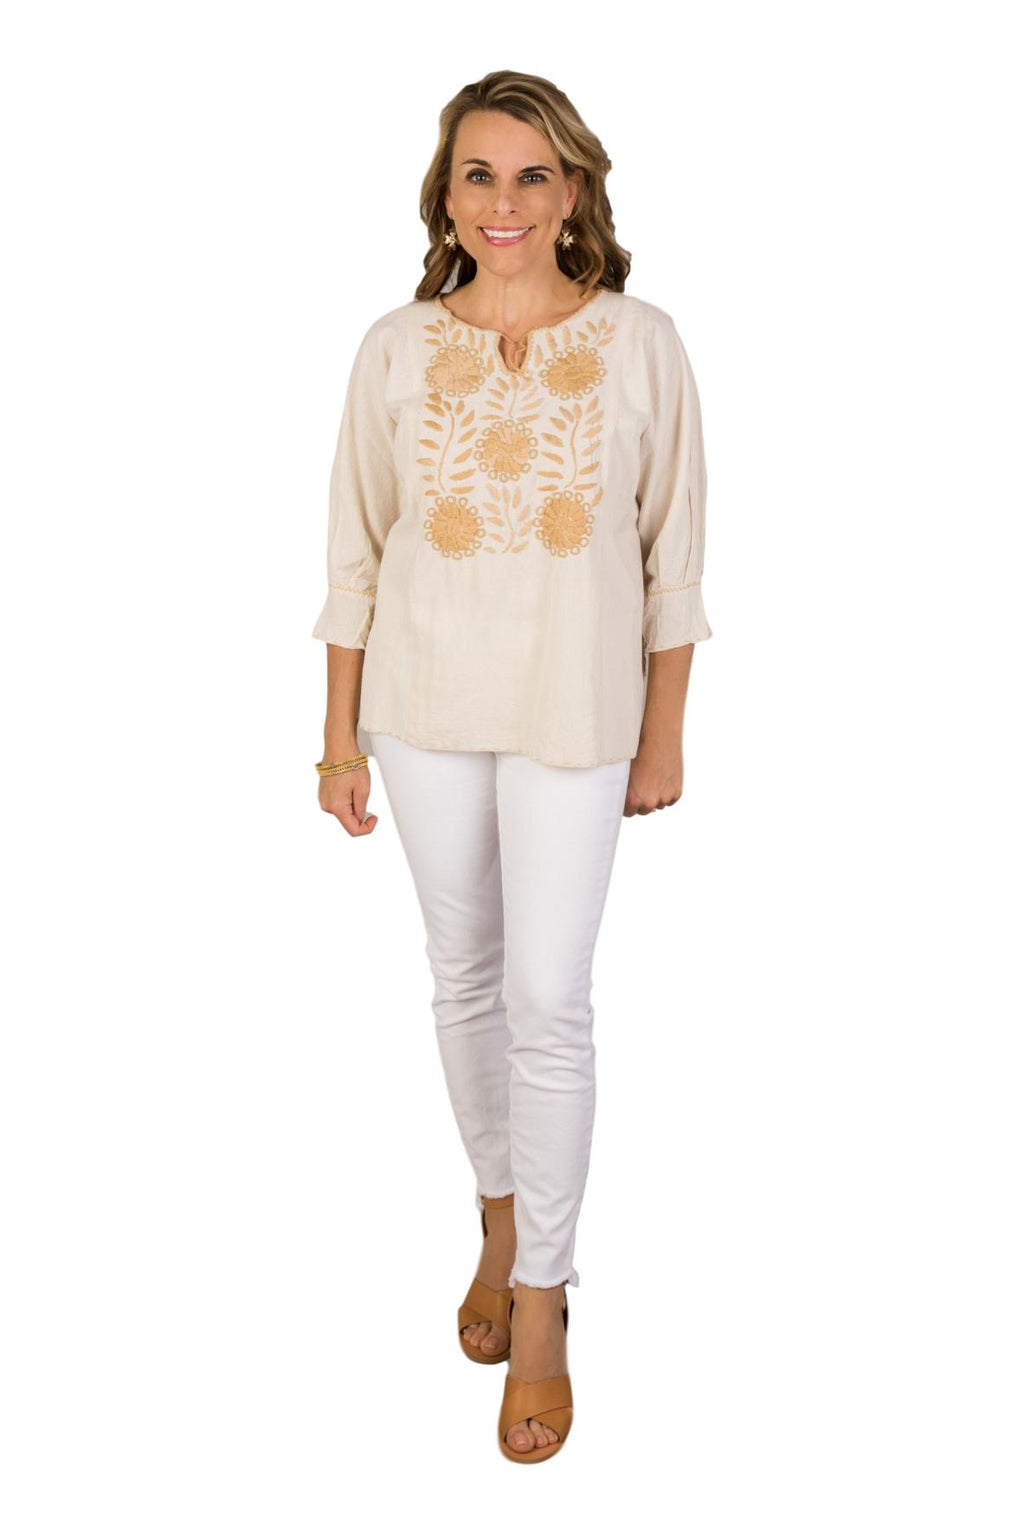 Corzo Mexican Blouse - Neutral